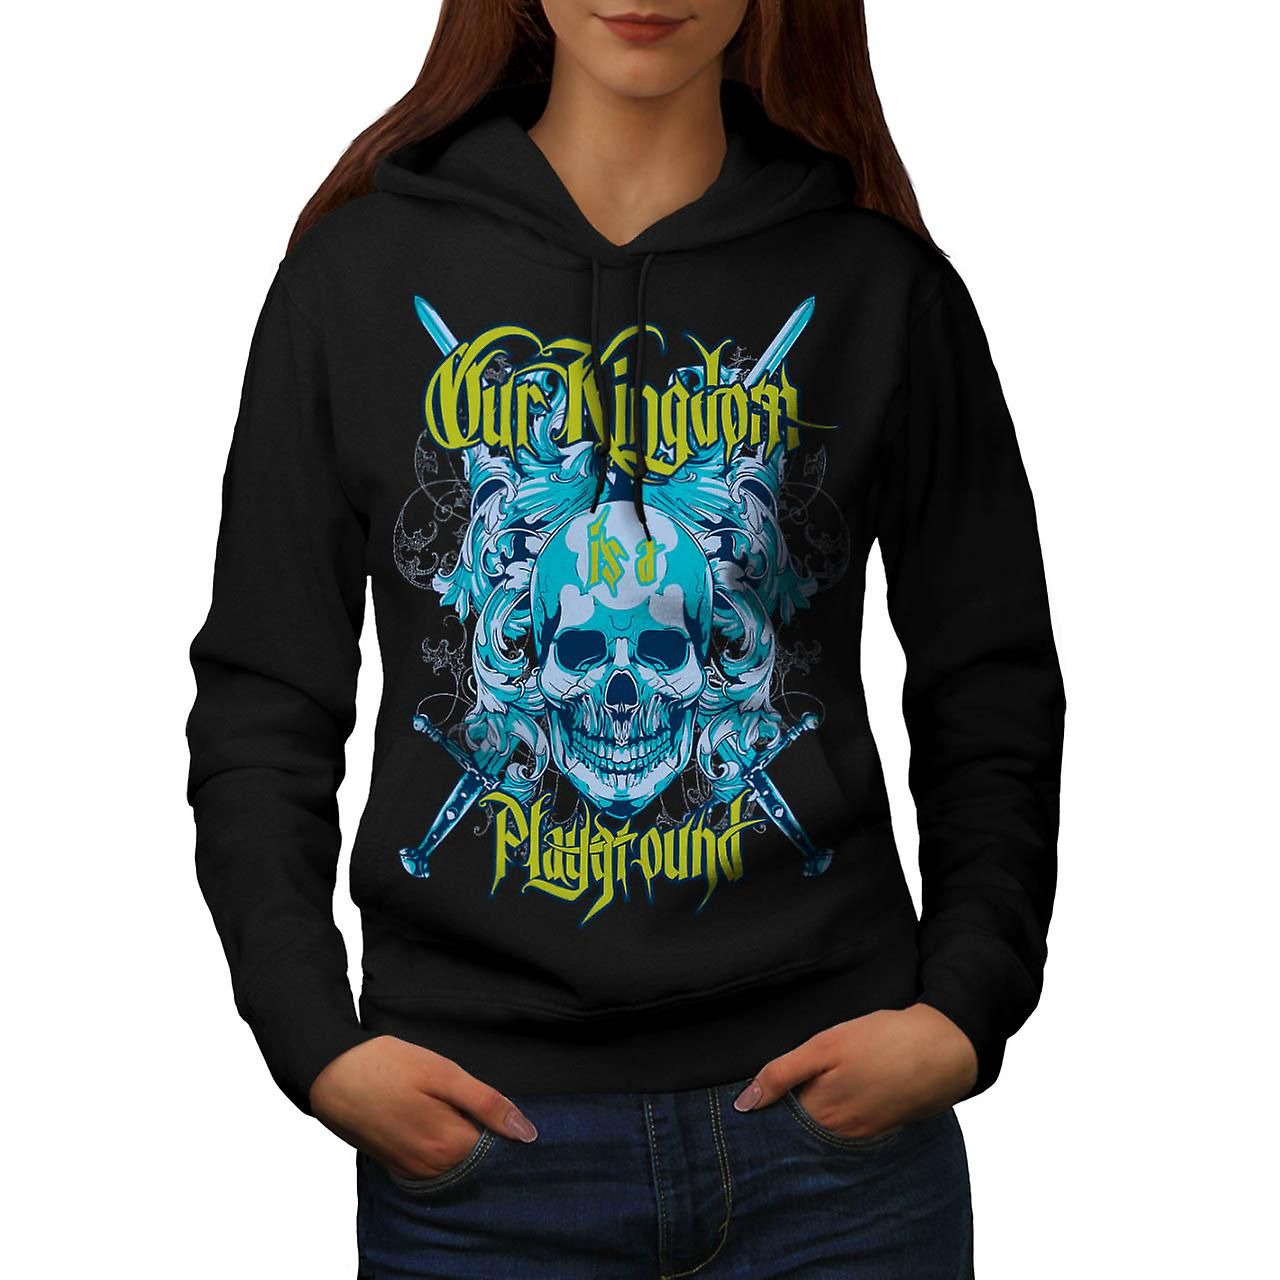 Kingdom Play Ground Monster Game Women Black Hoodie | Wellcoda